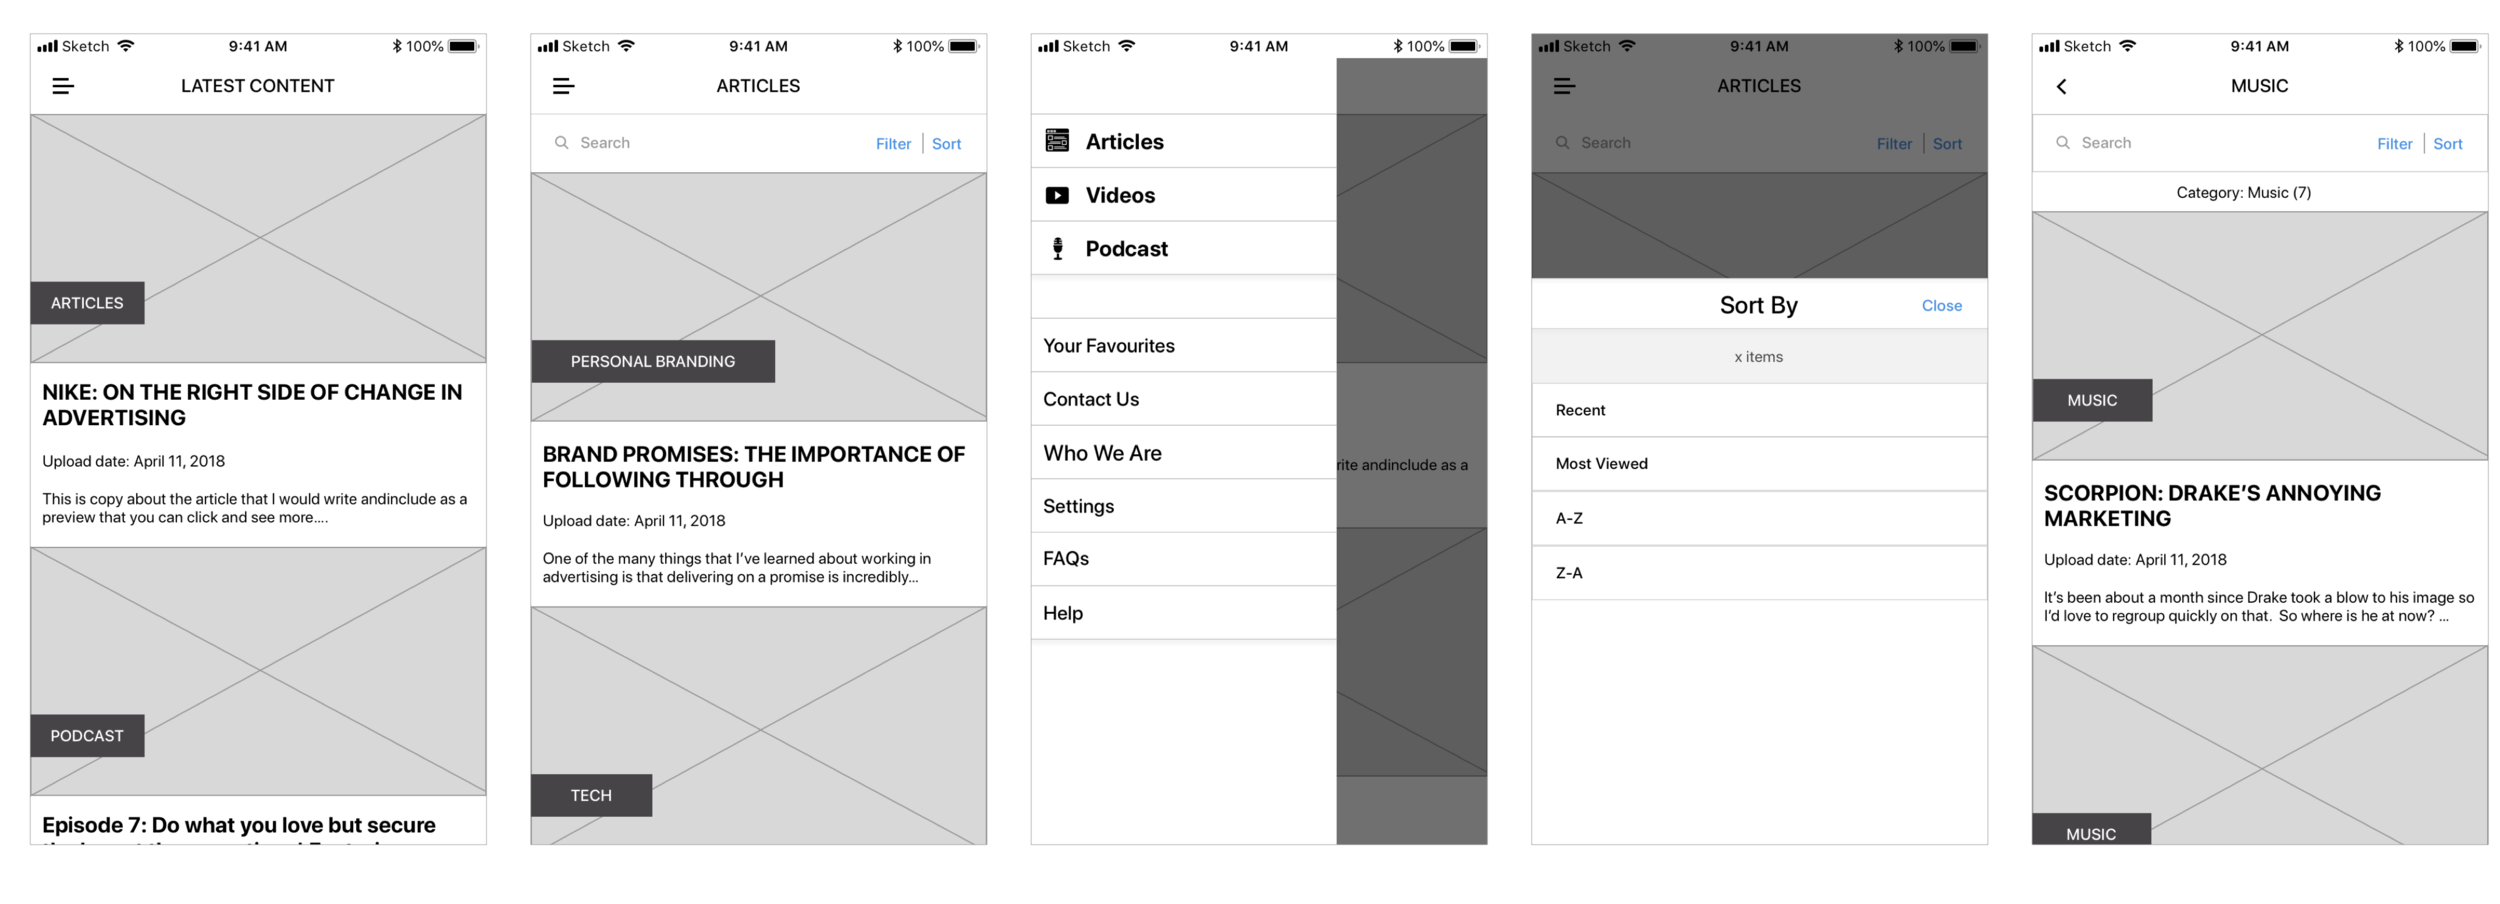 Wireframes Image #1.png